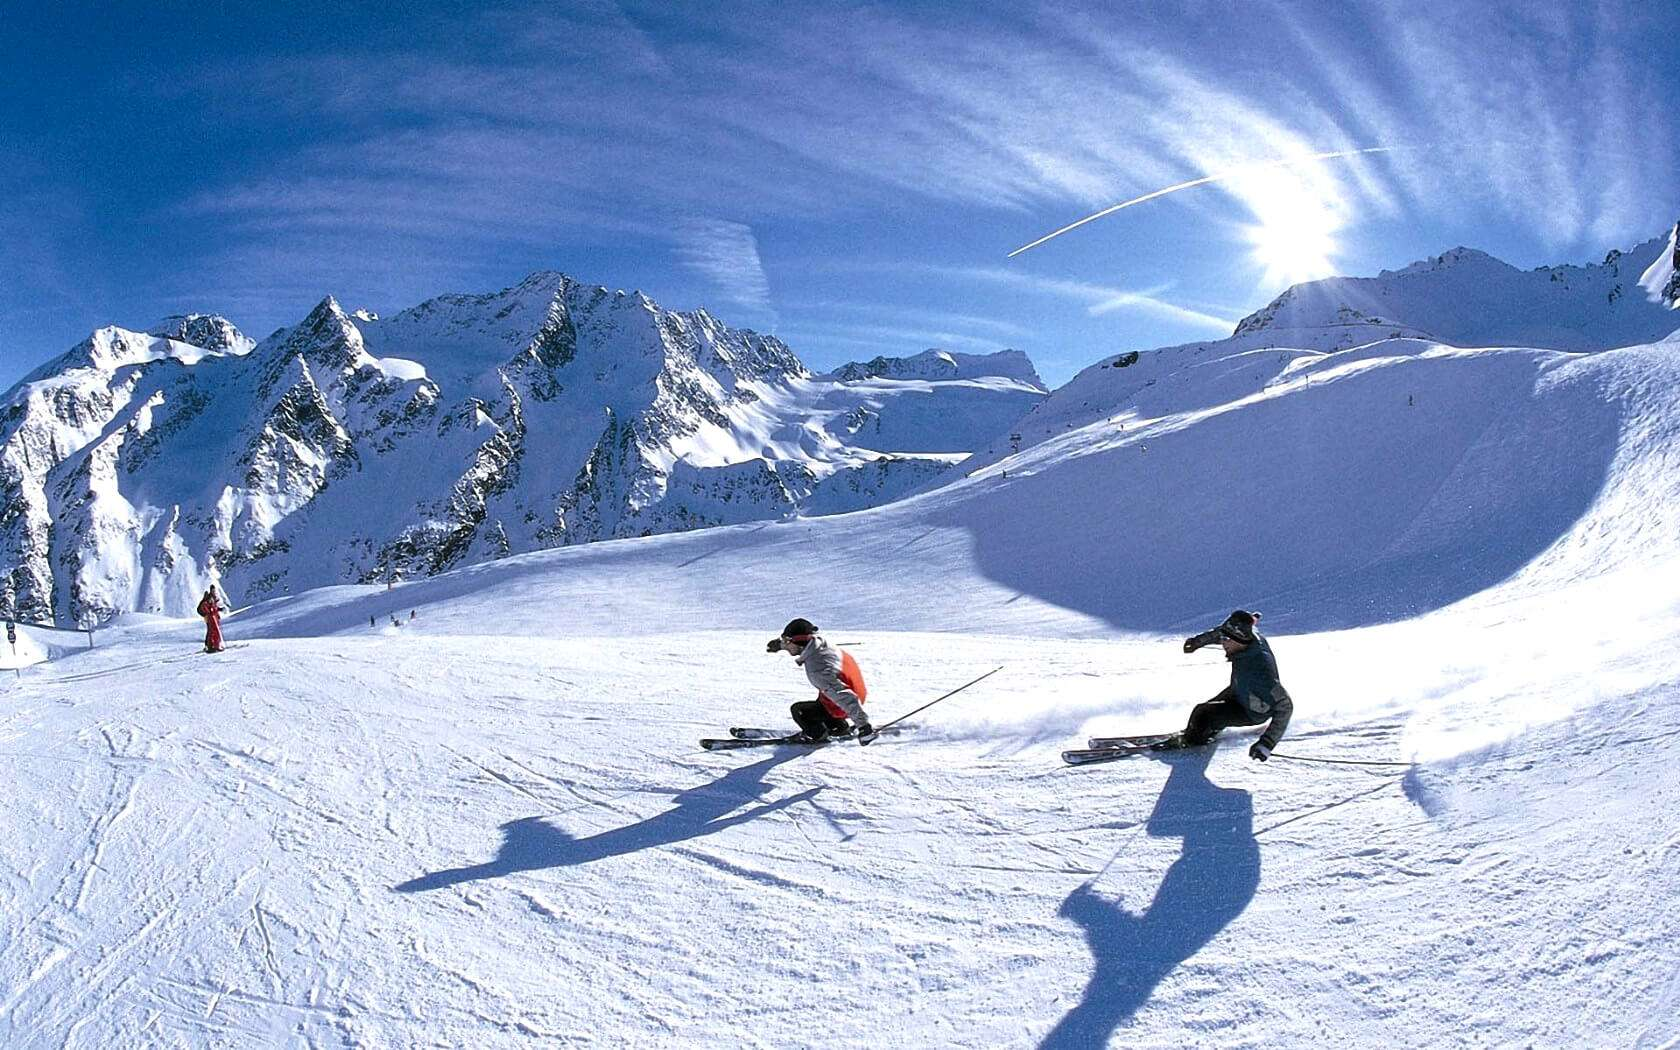 An Adventure Guide to the Ski Resorts in the Alborz Mountain Range